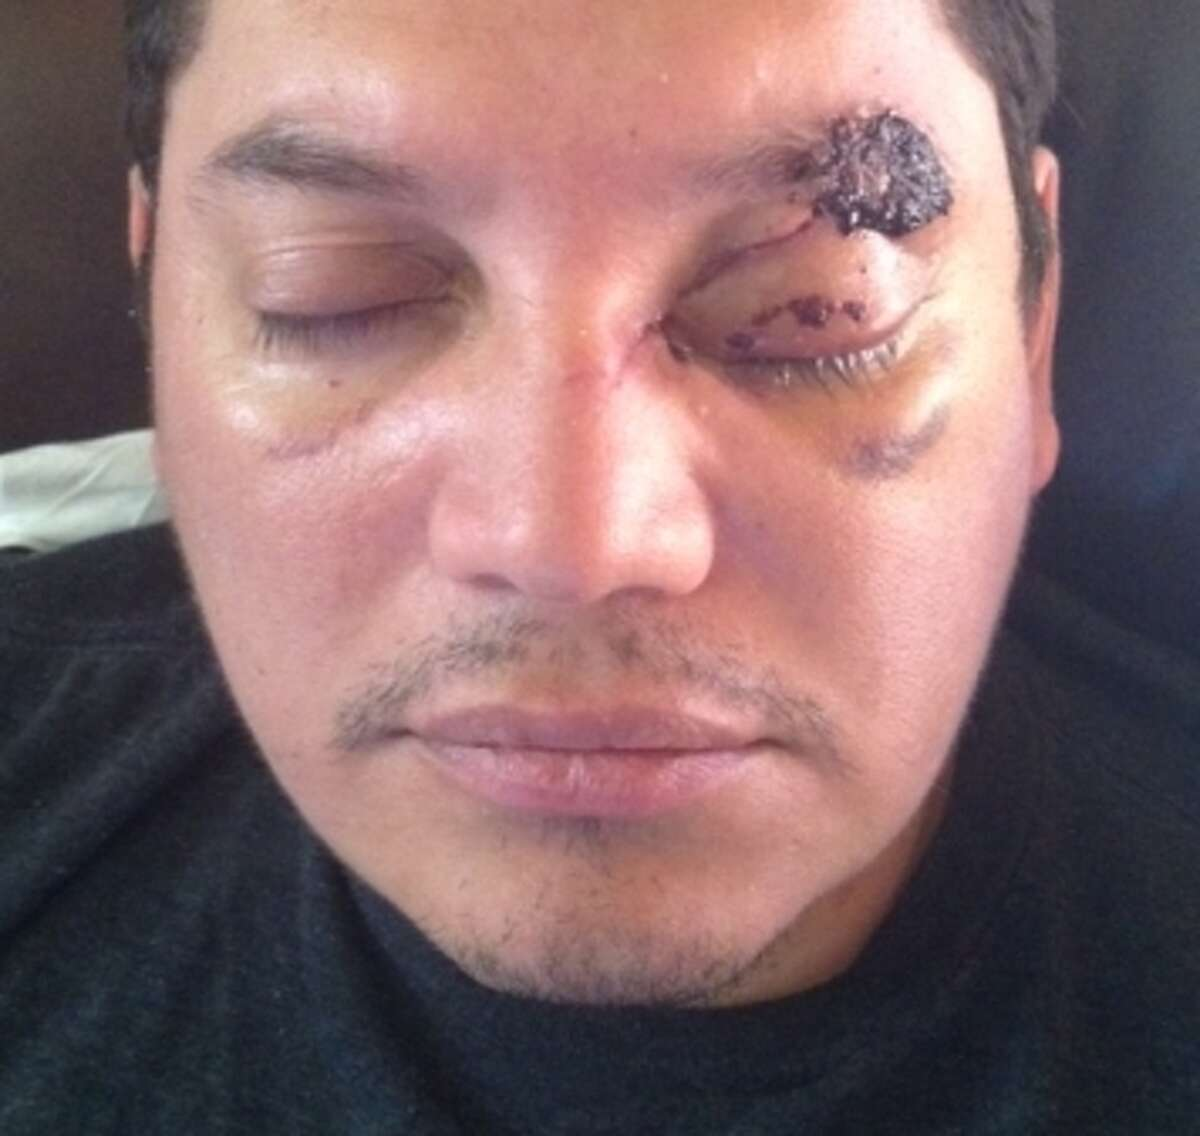 Roberto Chicas, 35, was struck on the head with a hammer by his UberX driver, Patrick Karajah, 26, on Sept. 23, 2014. A week later, he and his doctors still don't know if he will be able to see out of his left eye.